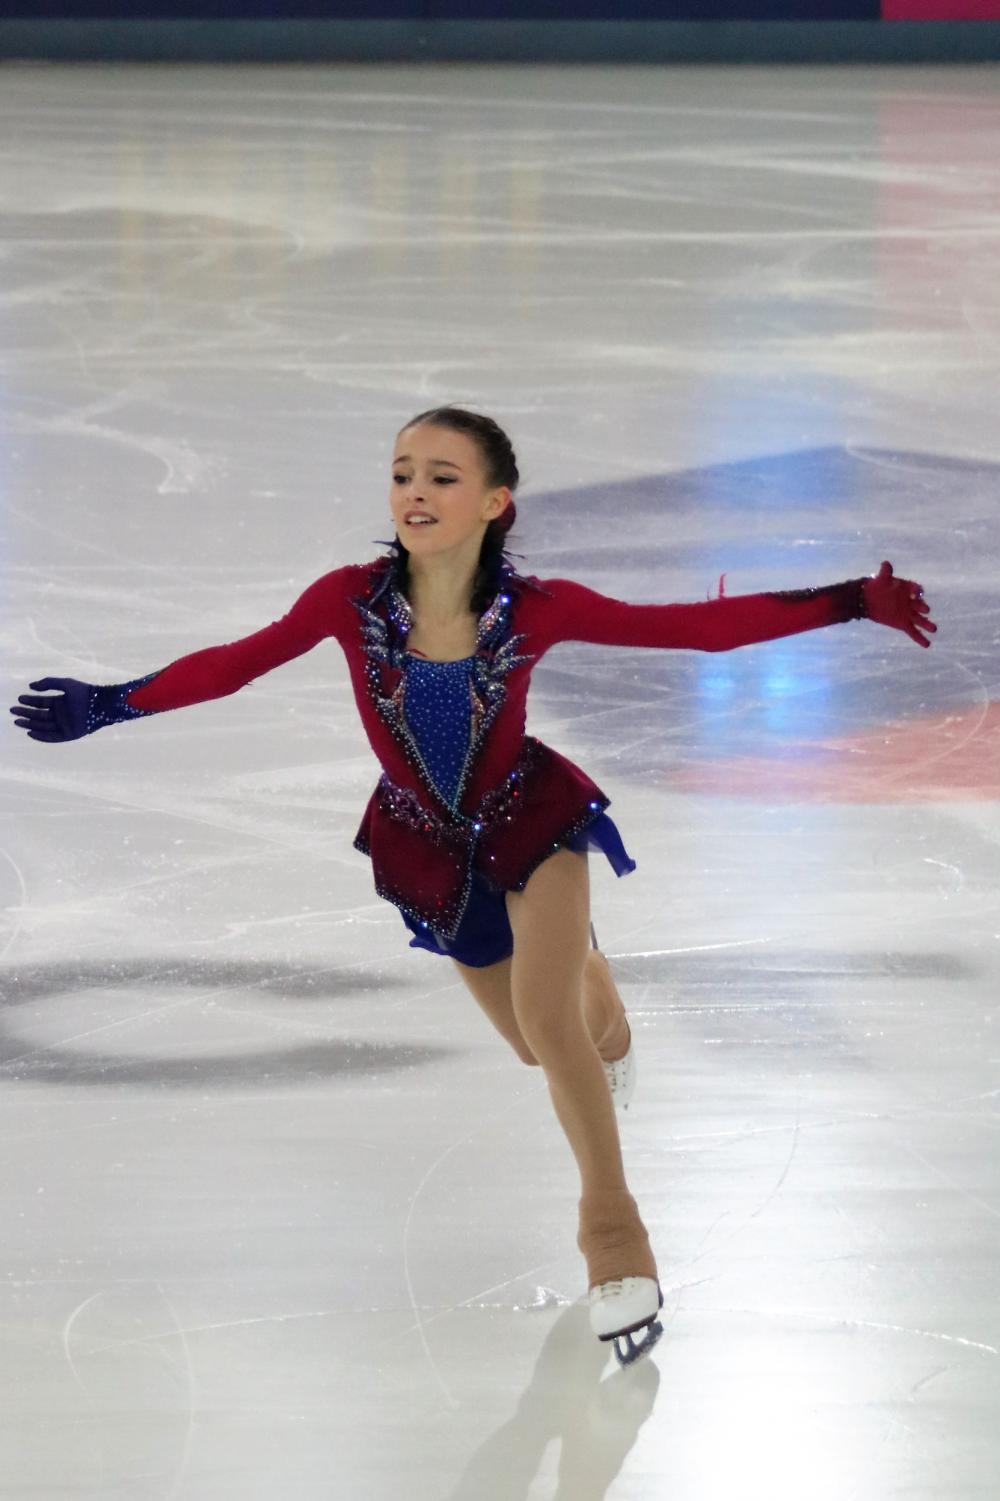 Competing in the 2019 Russian National Figure Skating Championships, fourteen-year-old Anna Shcherbakova won first place out of the eighteen competitors. Similarly, thirteen-year-old Alysa Liu won first out of seventeen in the 2019 United States National Figure Skating Championships.